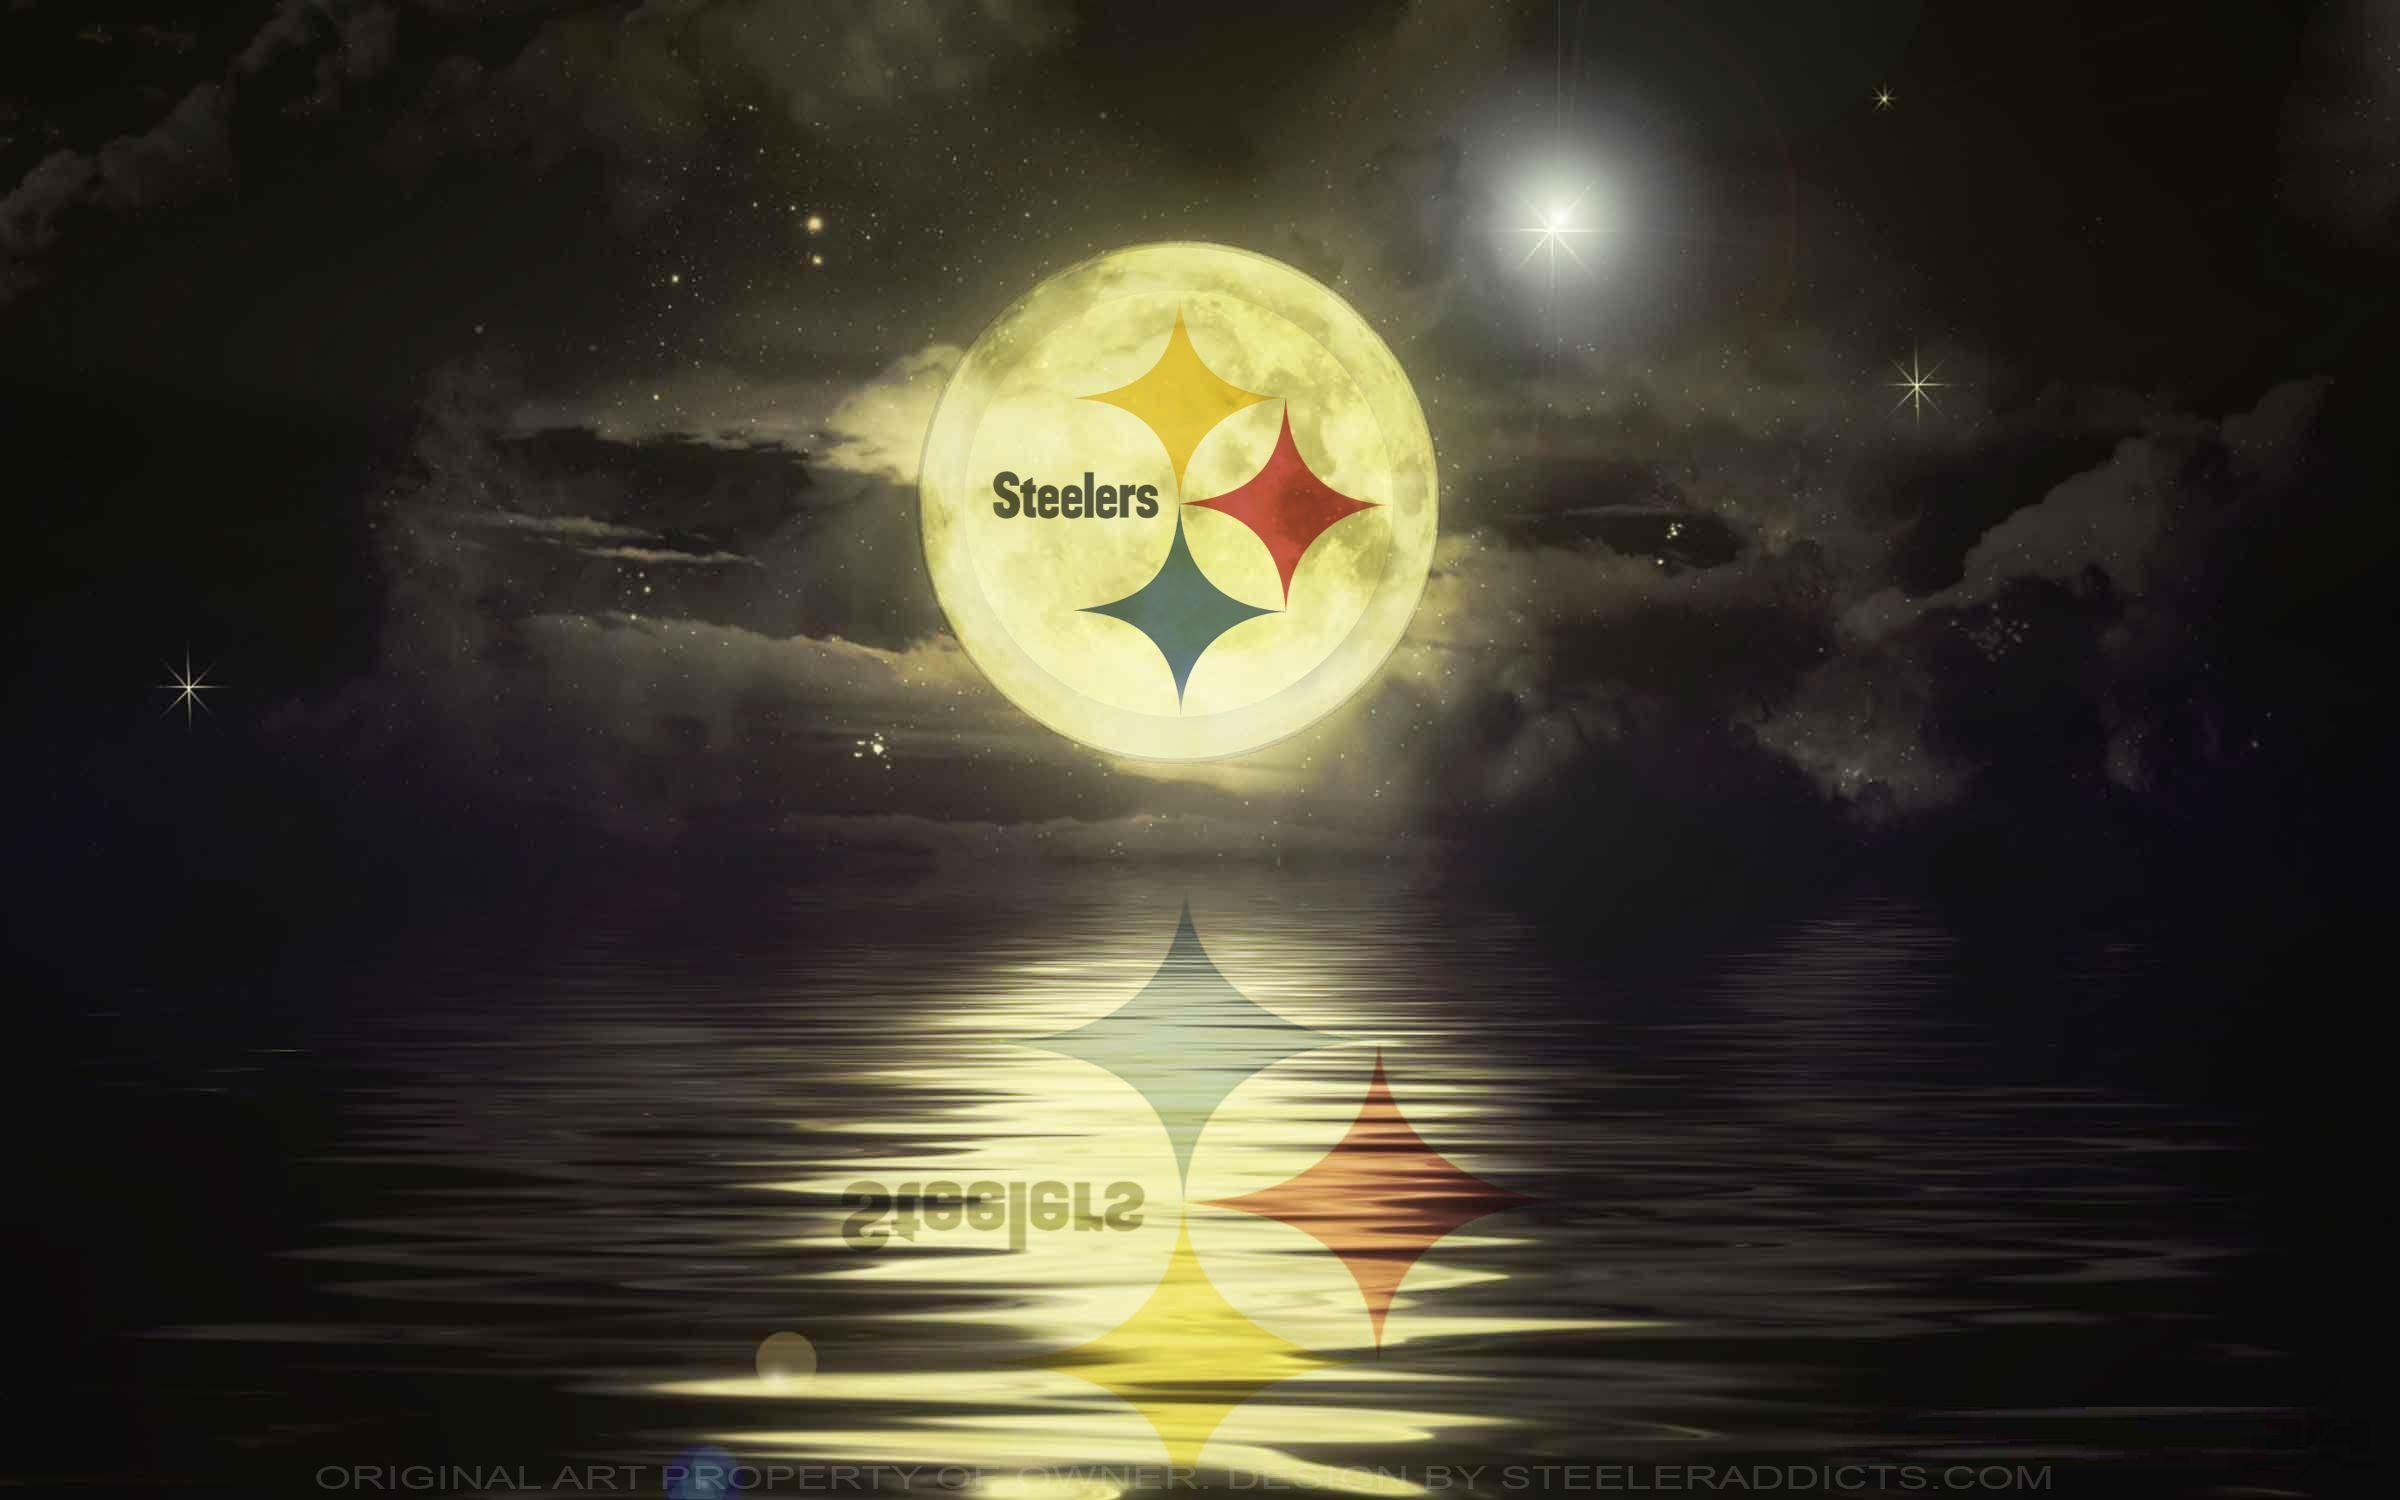 More Steelers Wallpapers Loaded Up 2400x1500PX ~ Wallpapers